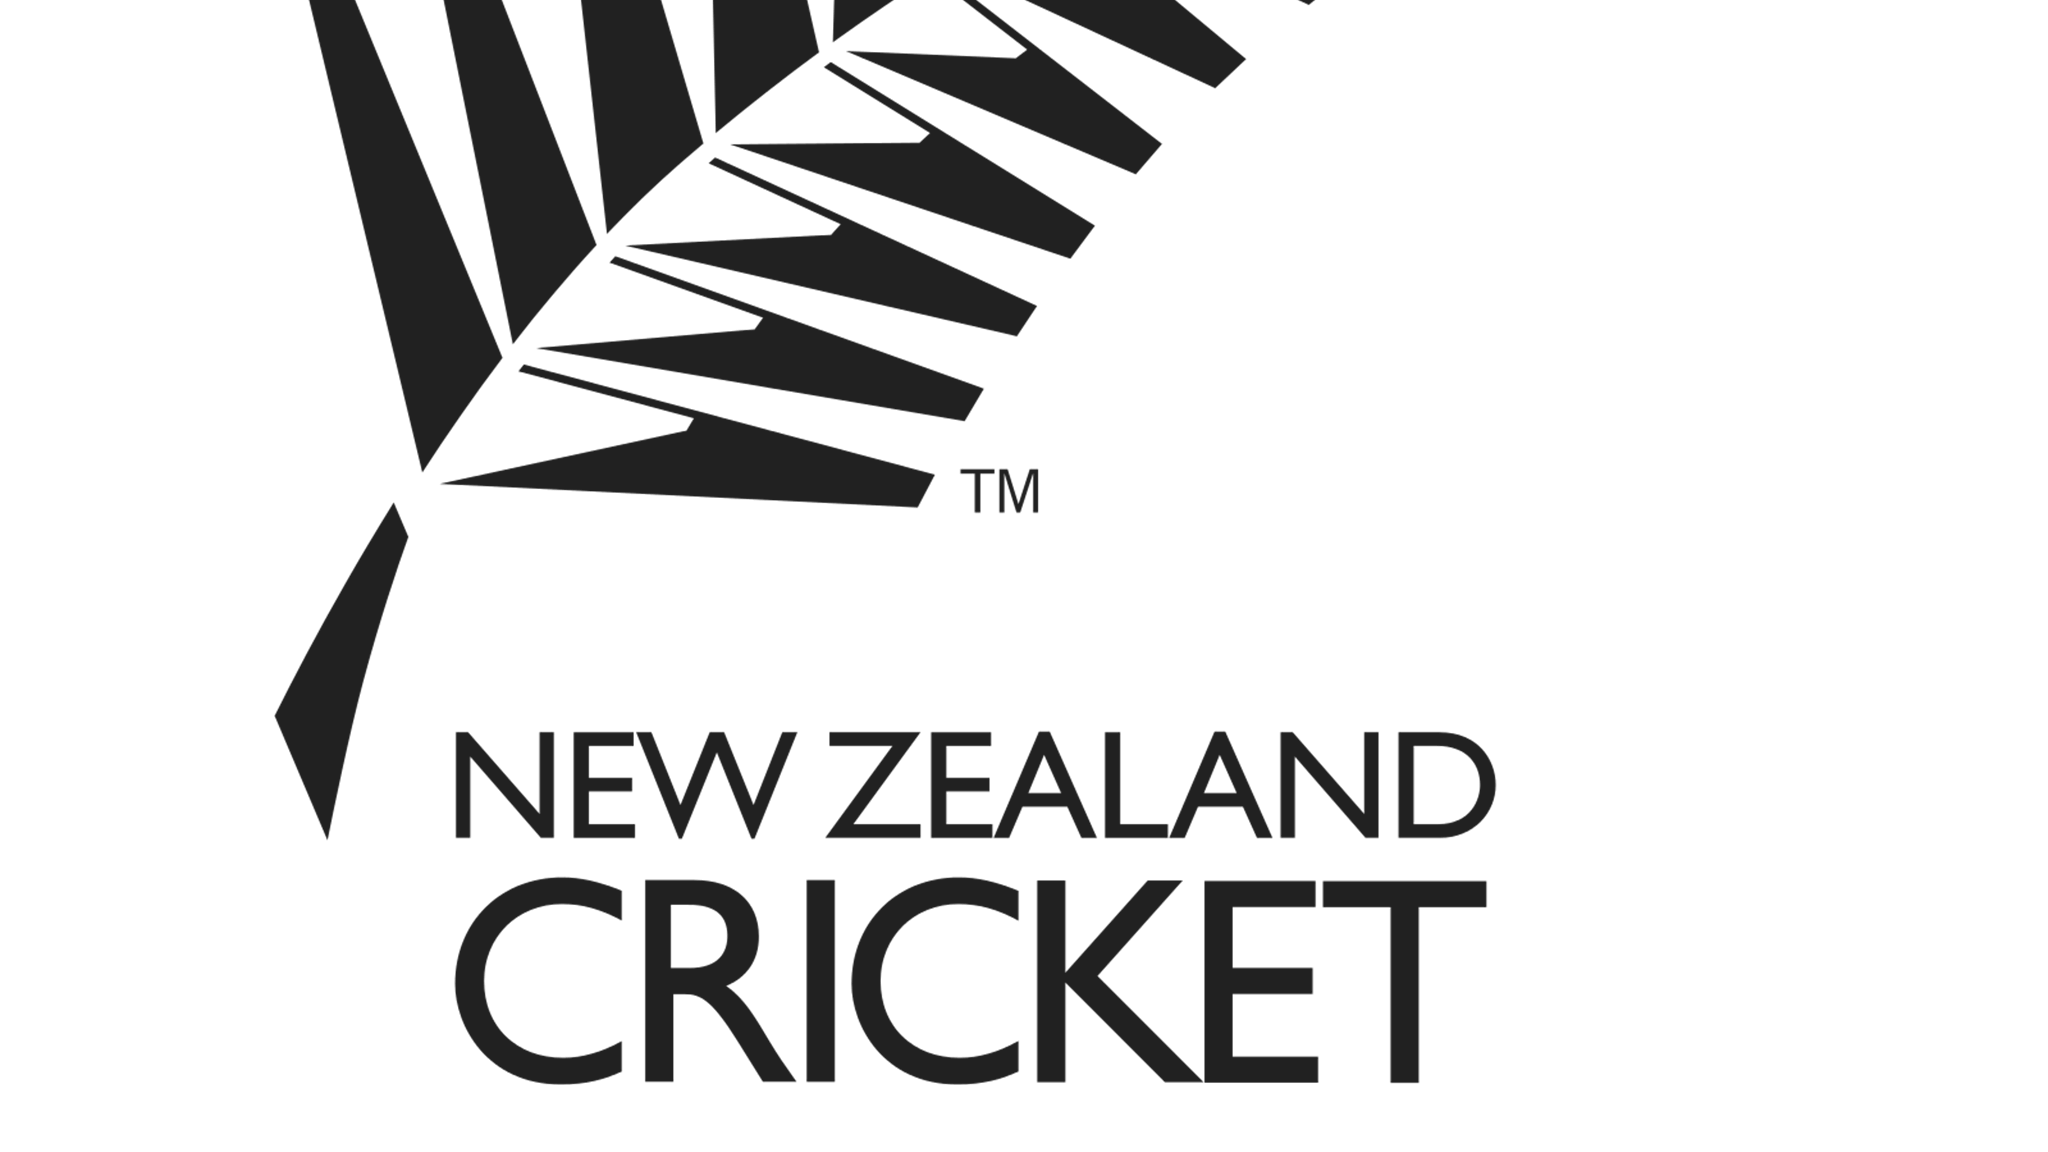 ESPN+, New Zealand Cricket Reach Six-Year Extension